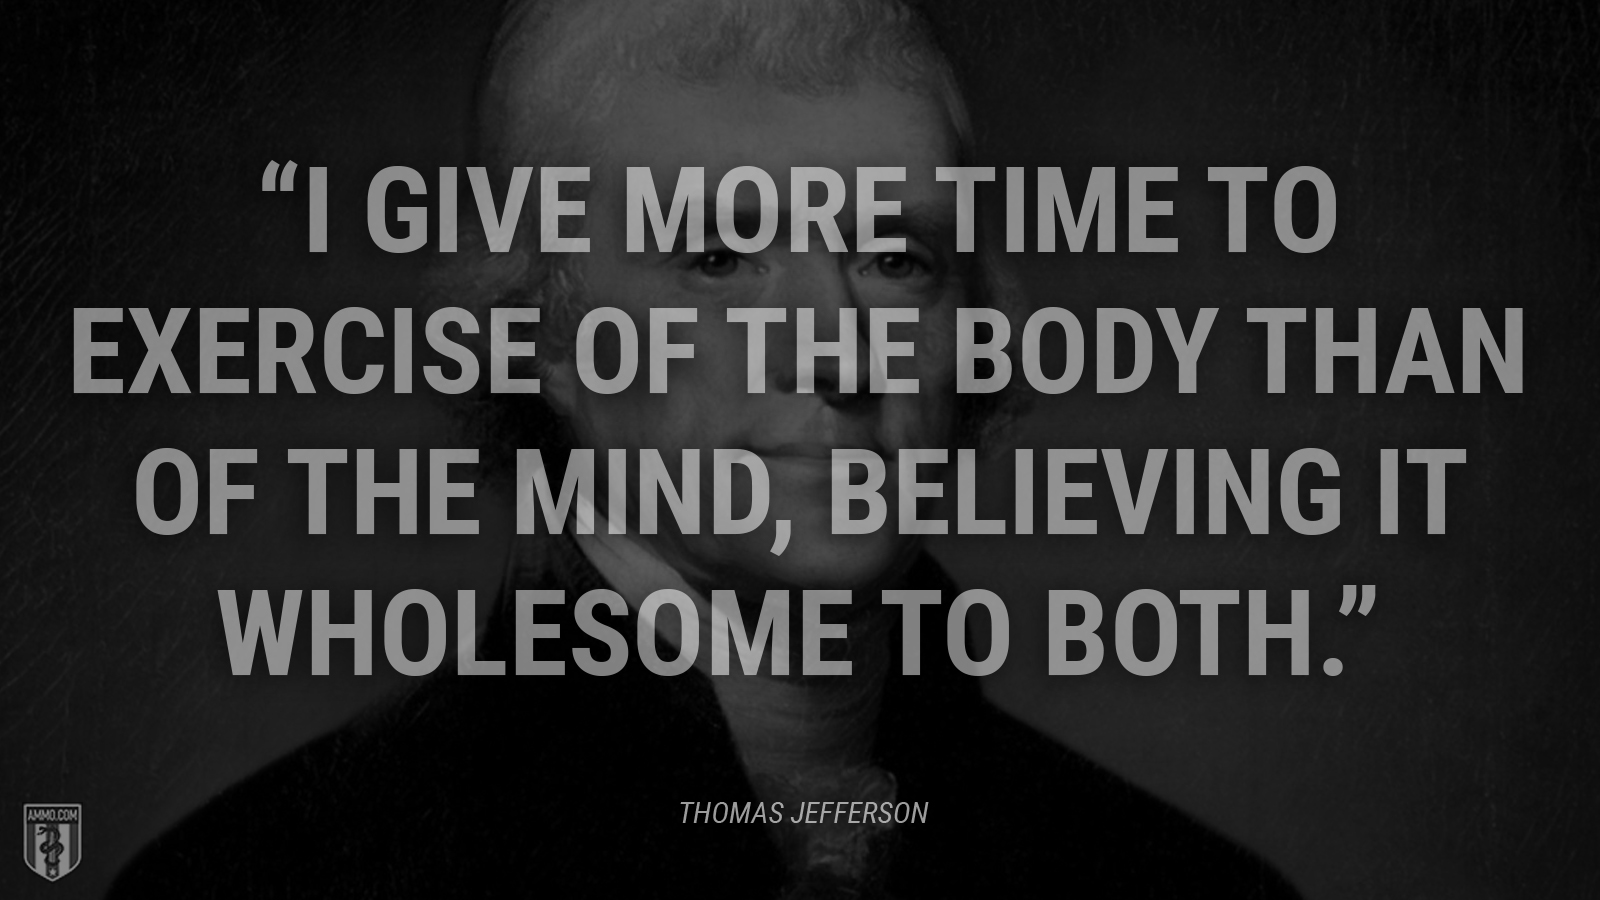 """""""I give more time to exercise of the body than of the mind, believing it wholesome to both."""" - Thomas Jefferson"""